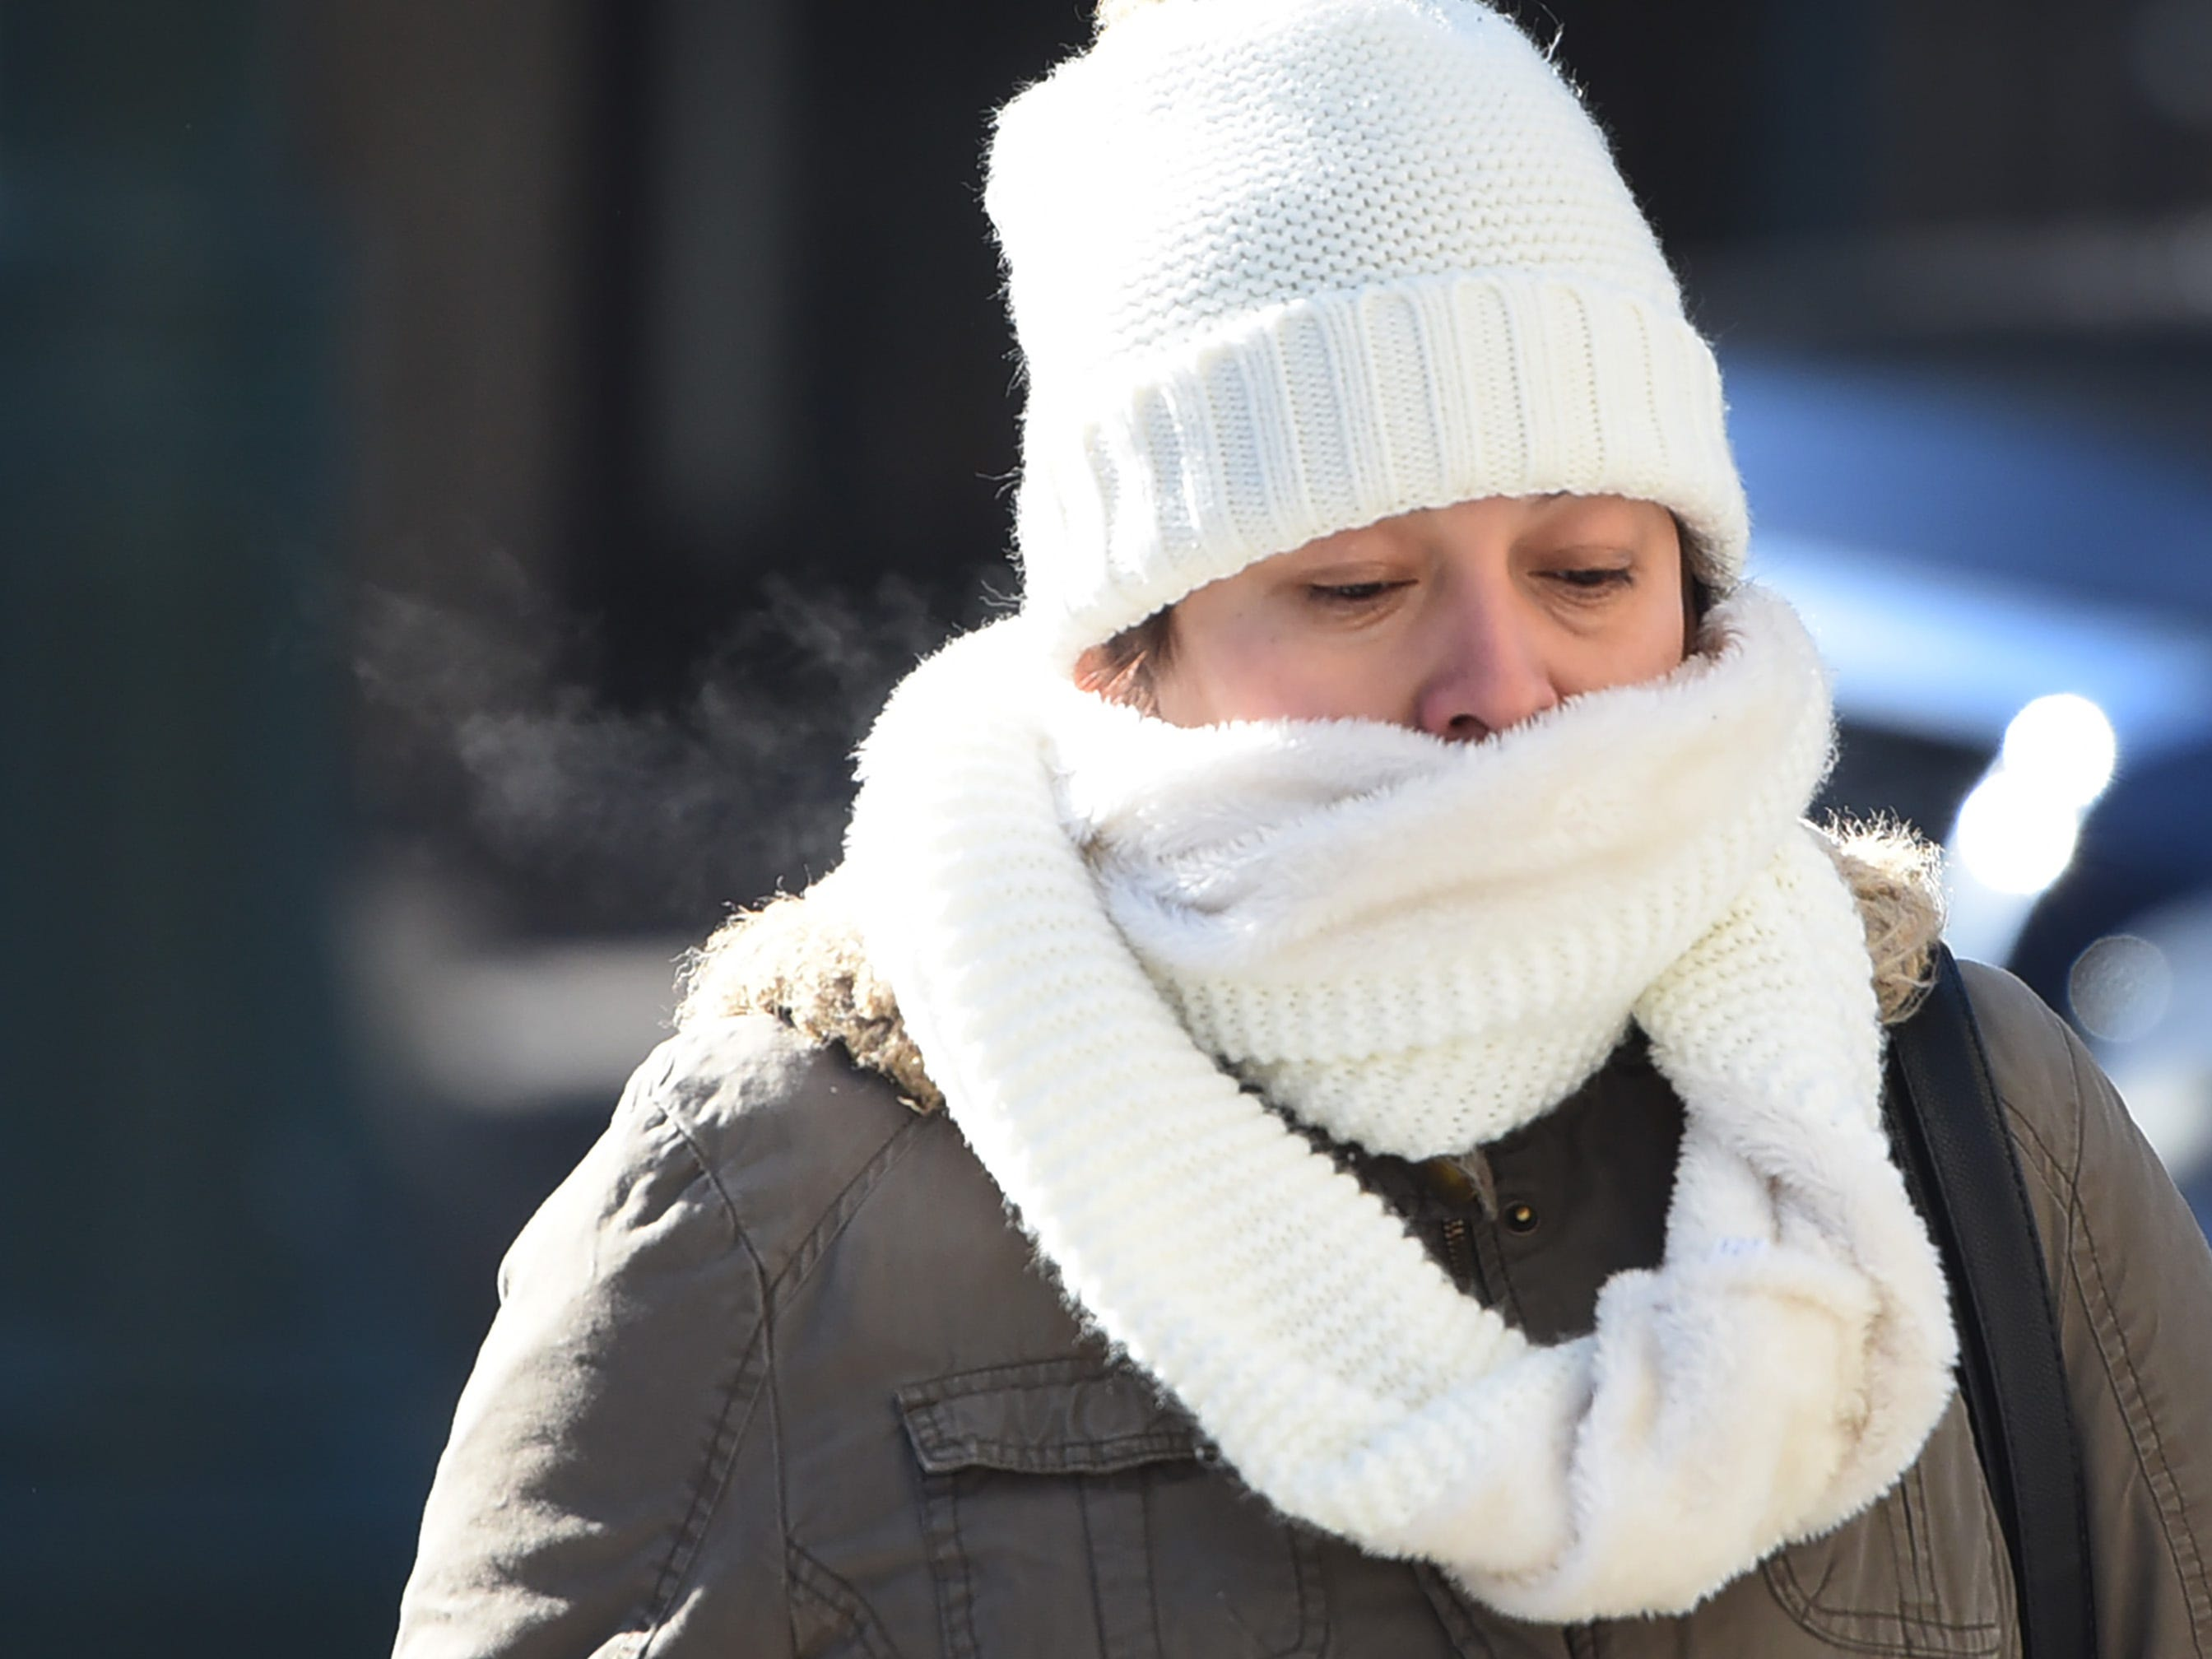 As the temperatures plummet, a woman braves the cold as she covers her face with a scarf in downtown Paterson, NJ., Jan. 30, 2019.